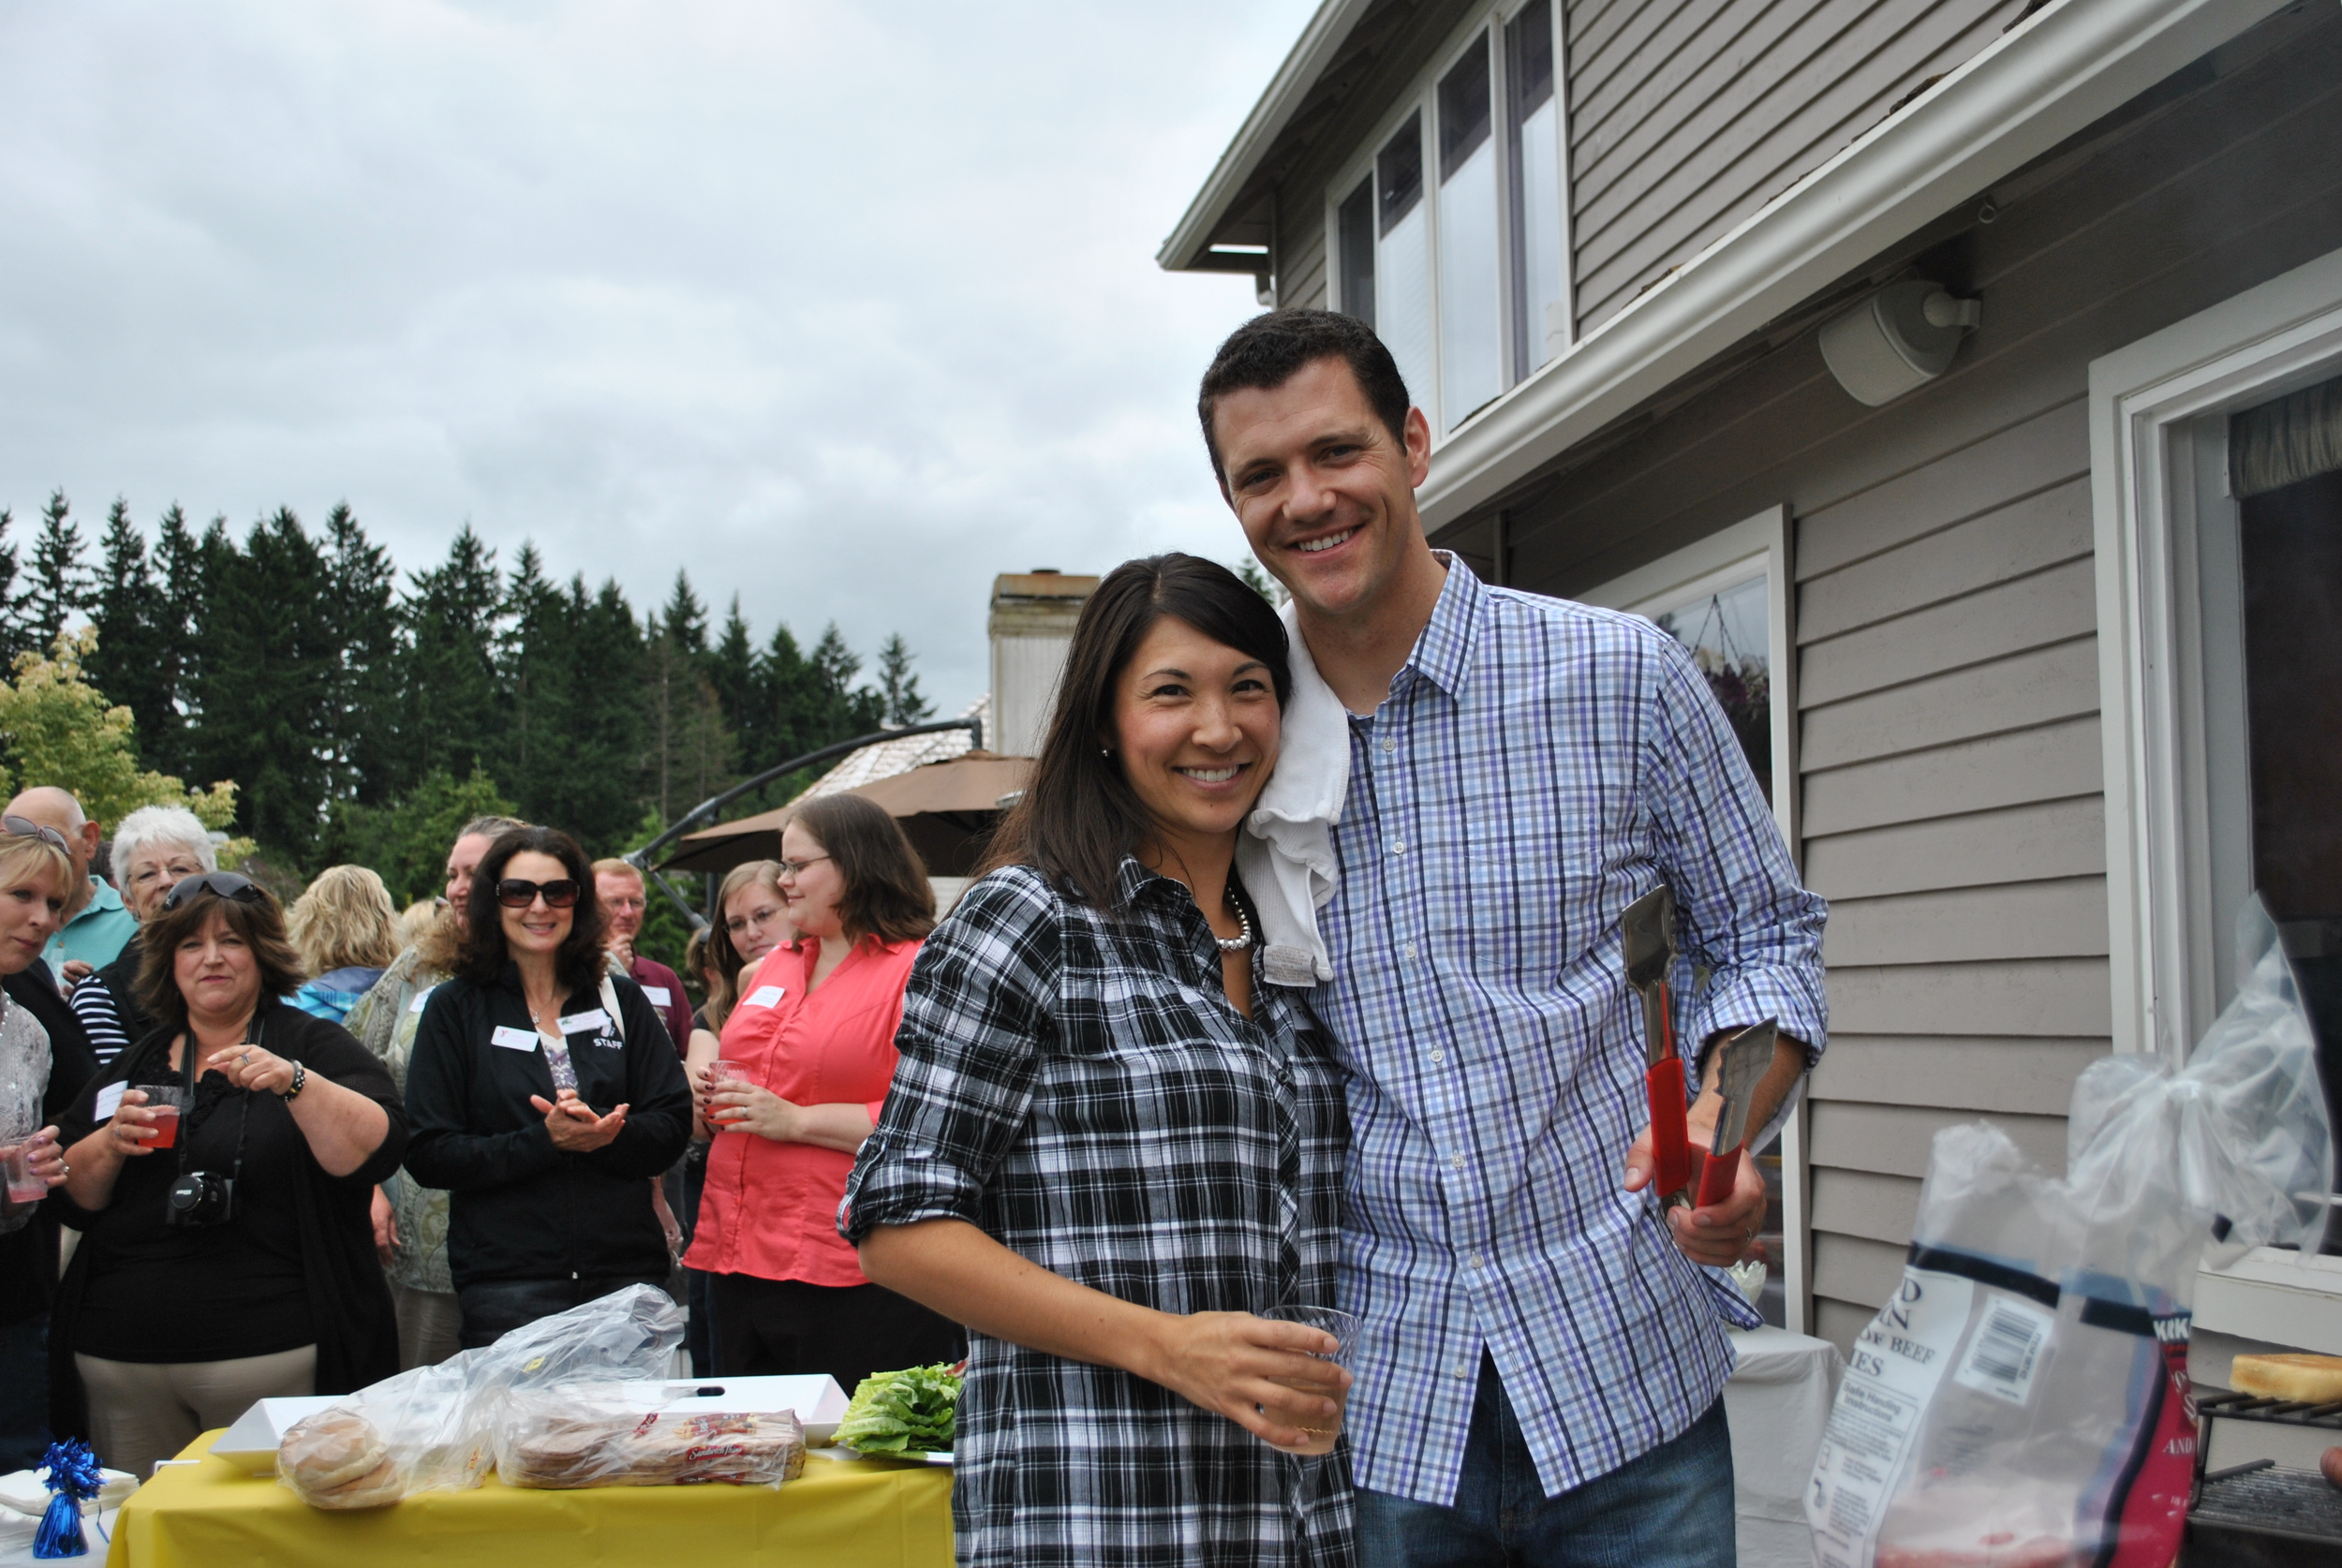 Join us after the parade for a volunteer appreciation BBQ at Joe & Steffanie's house from 1:00 - 3:00 pm. Register for more details!